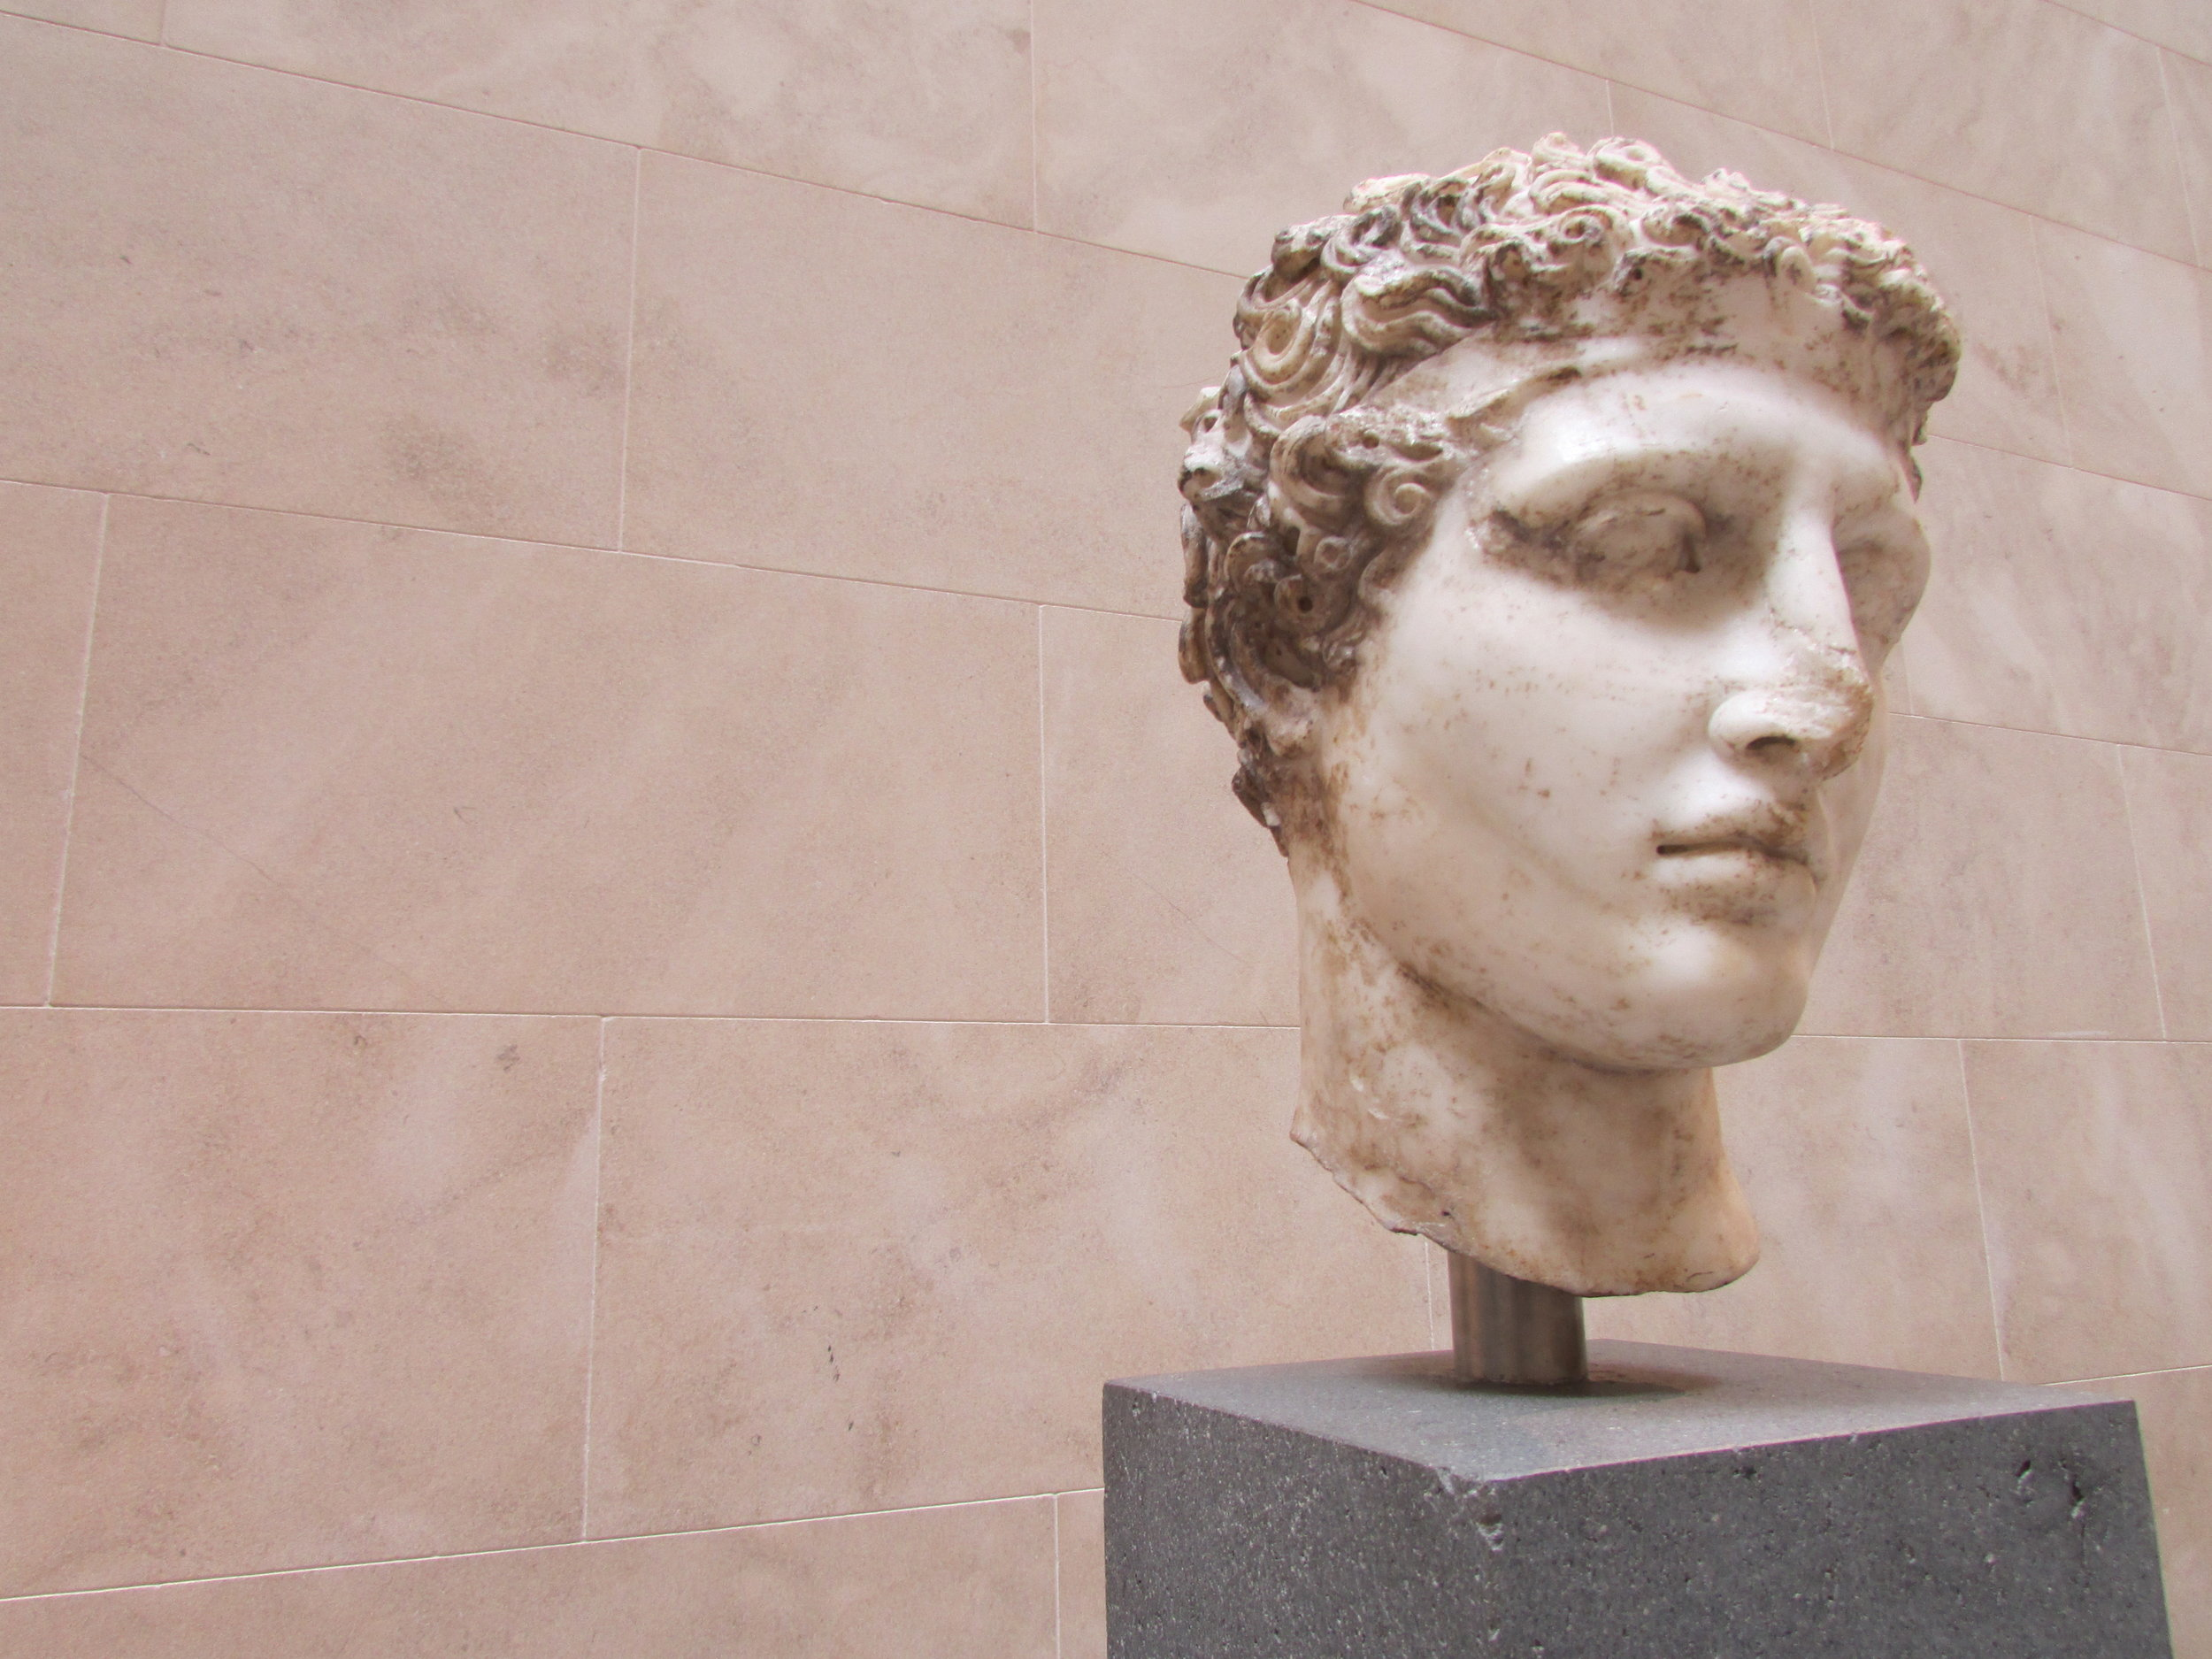 Greek sculptures at The Met